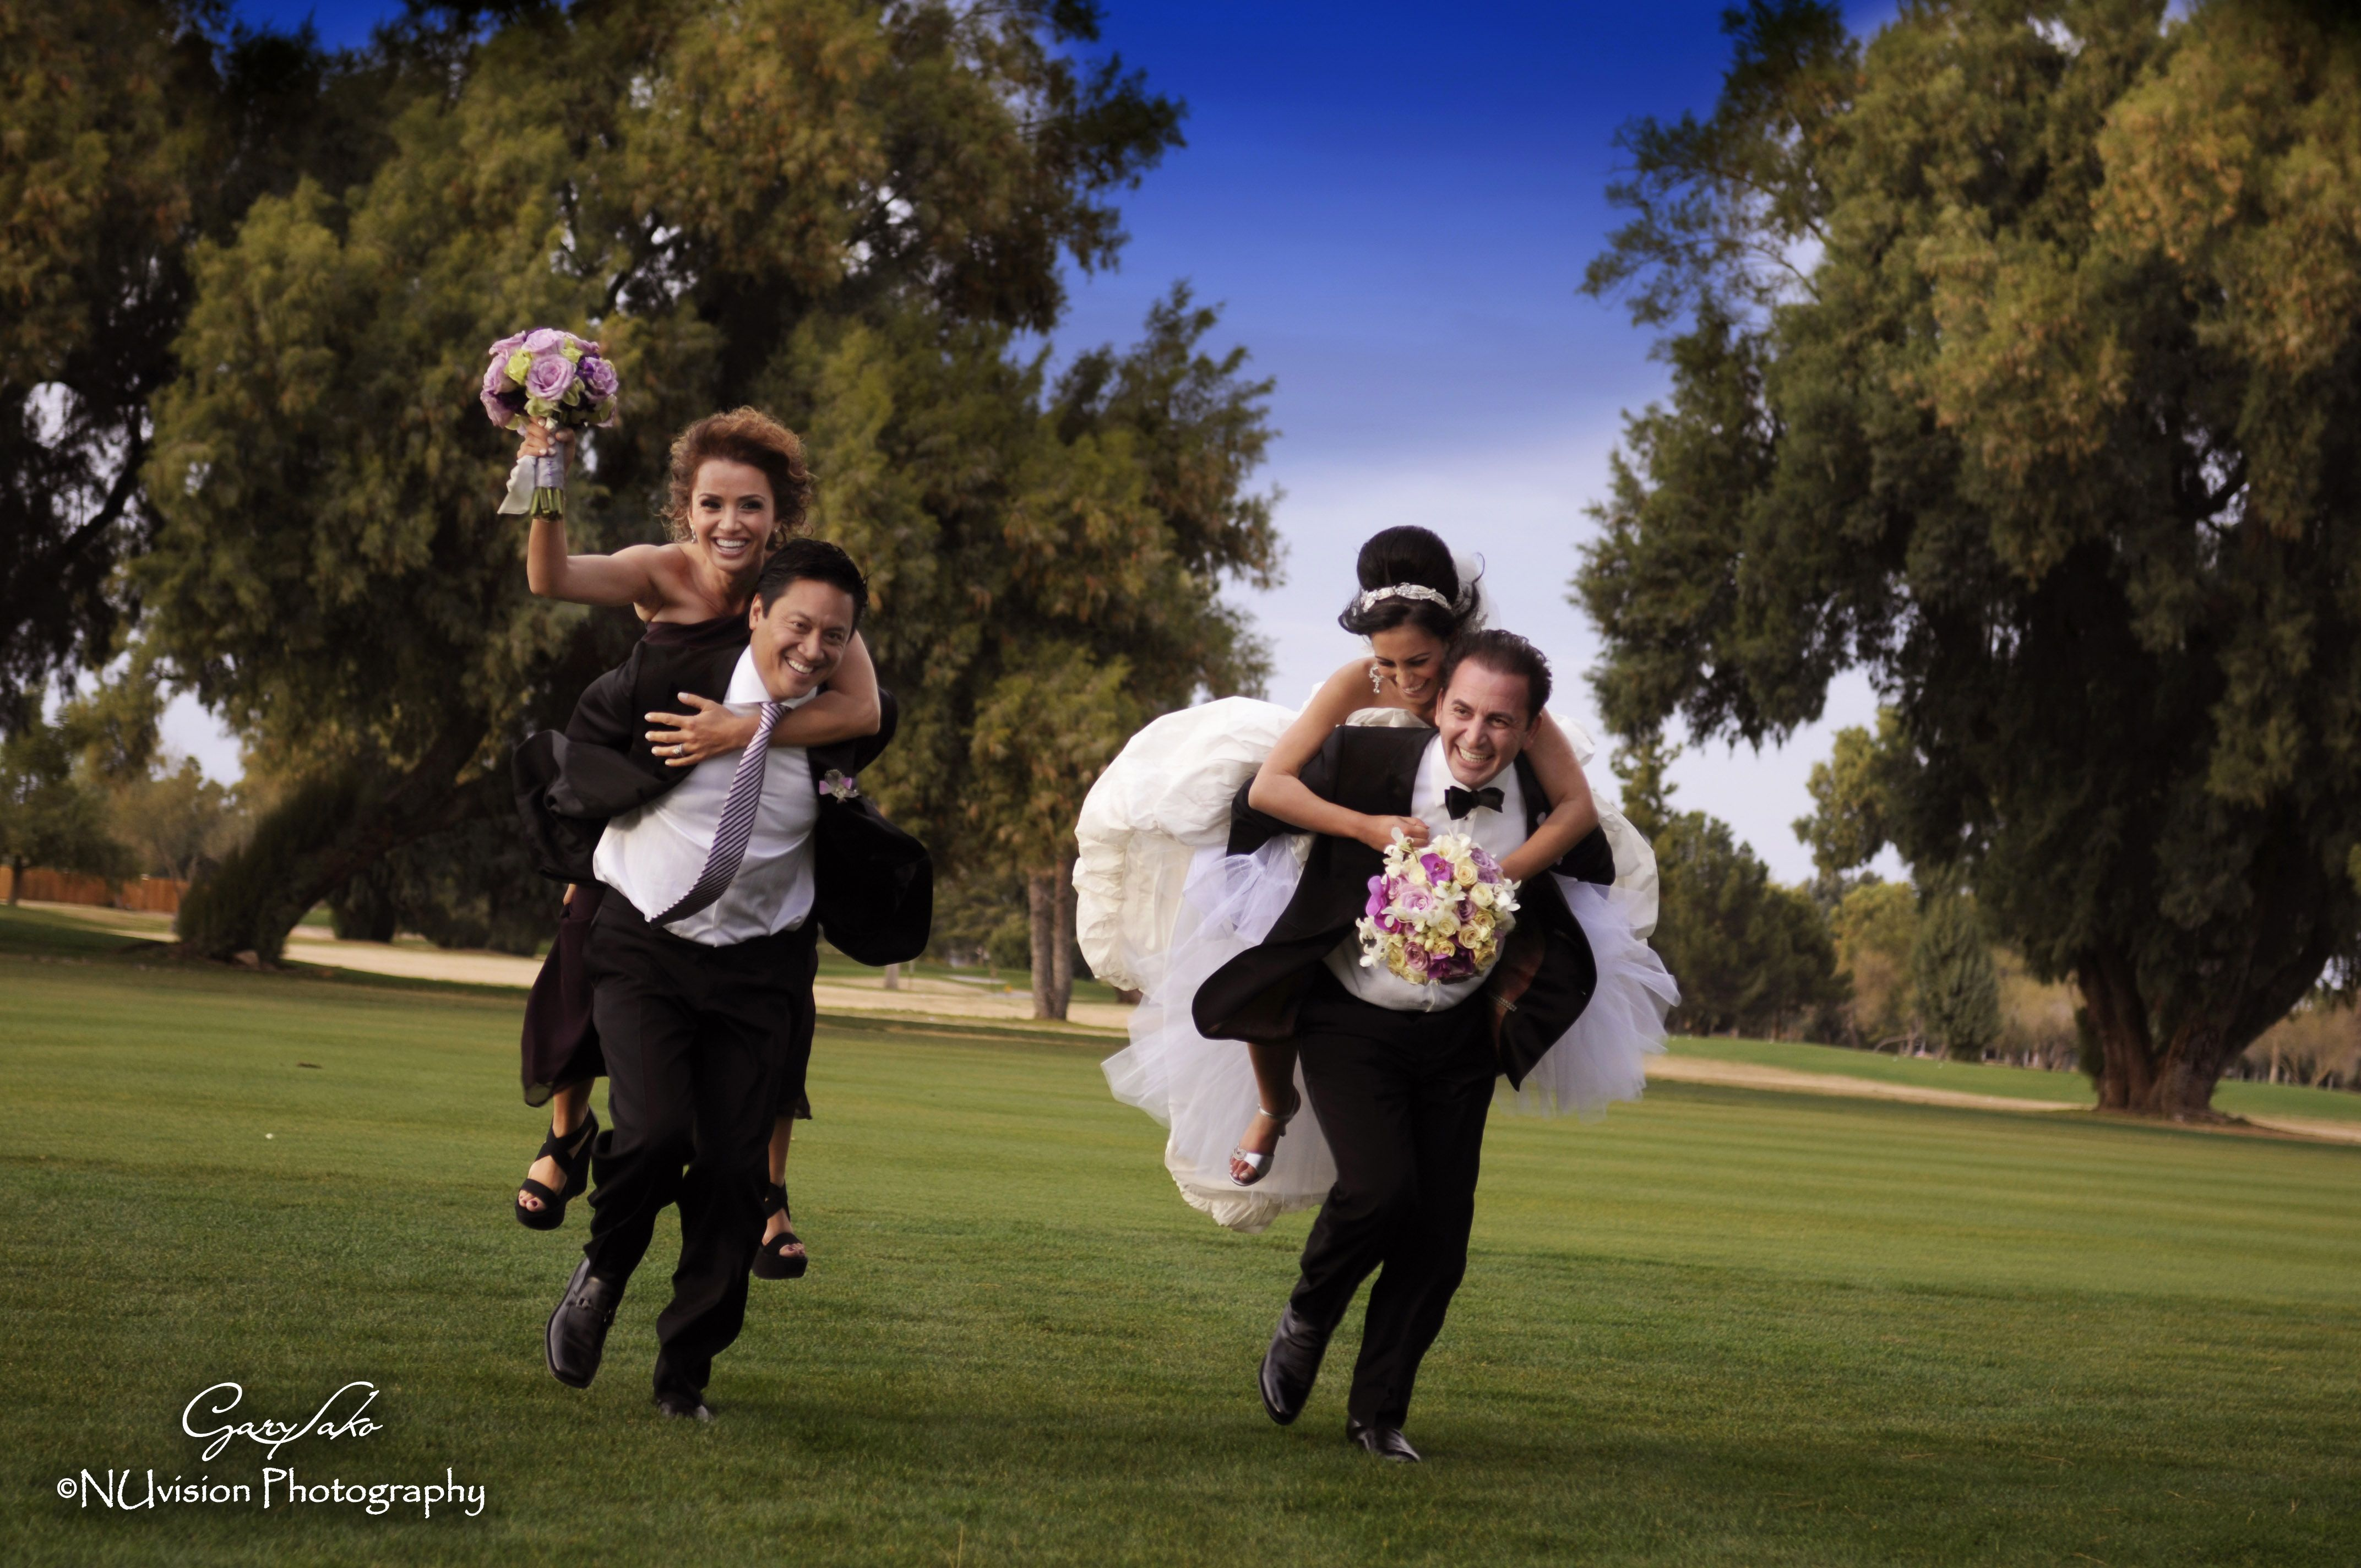 nuvision photography photo by gary sako wedding